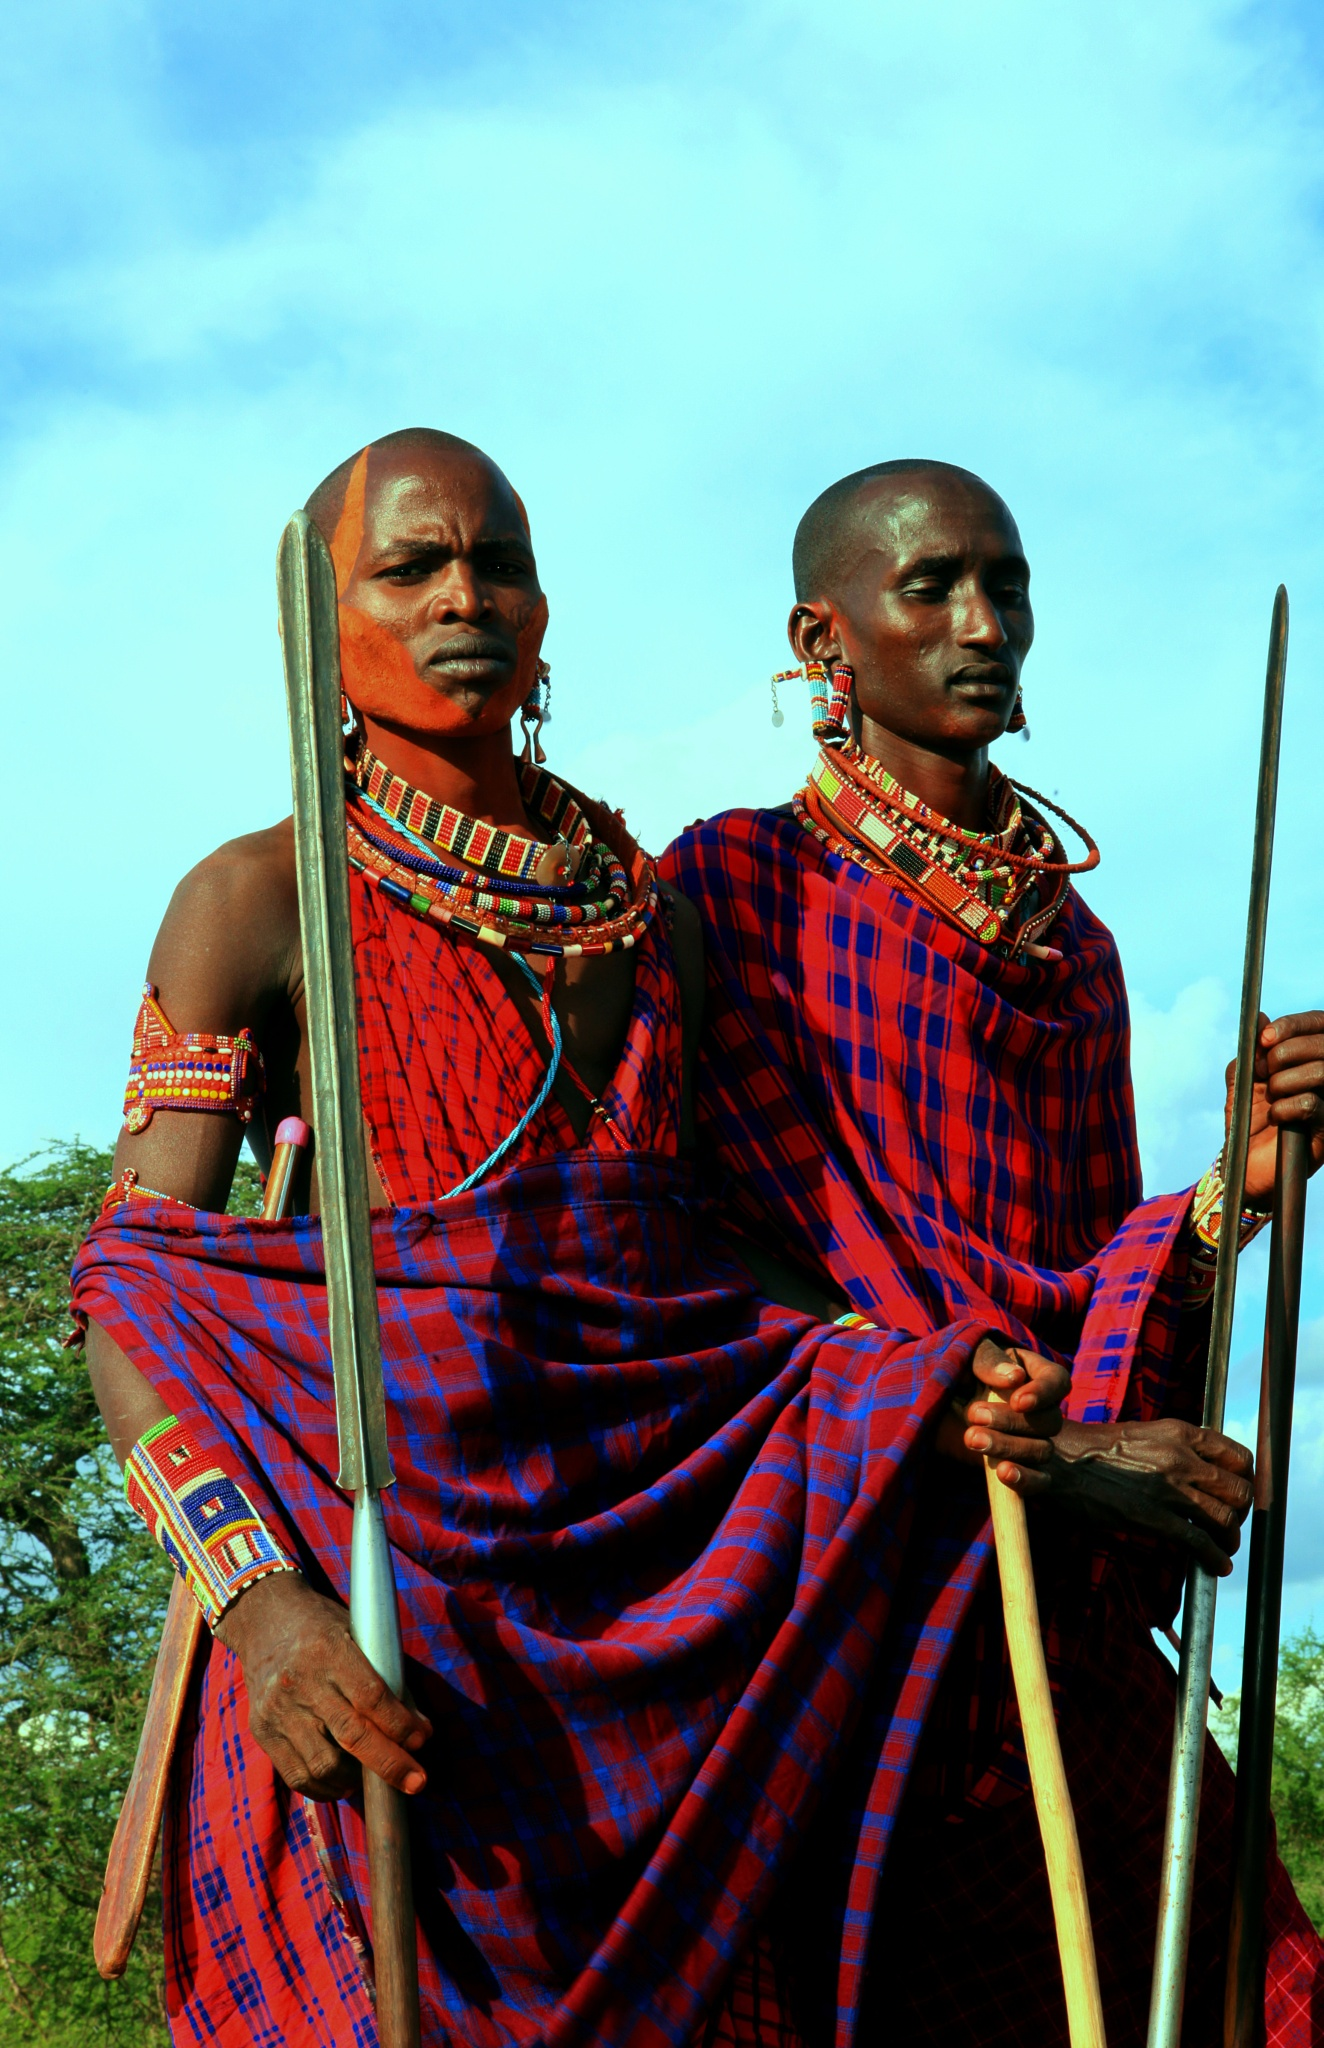 The Maasai, Kenya by robteilets